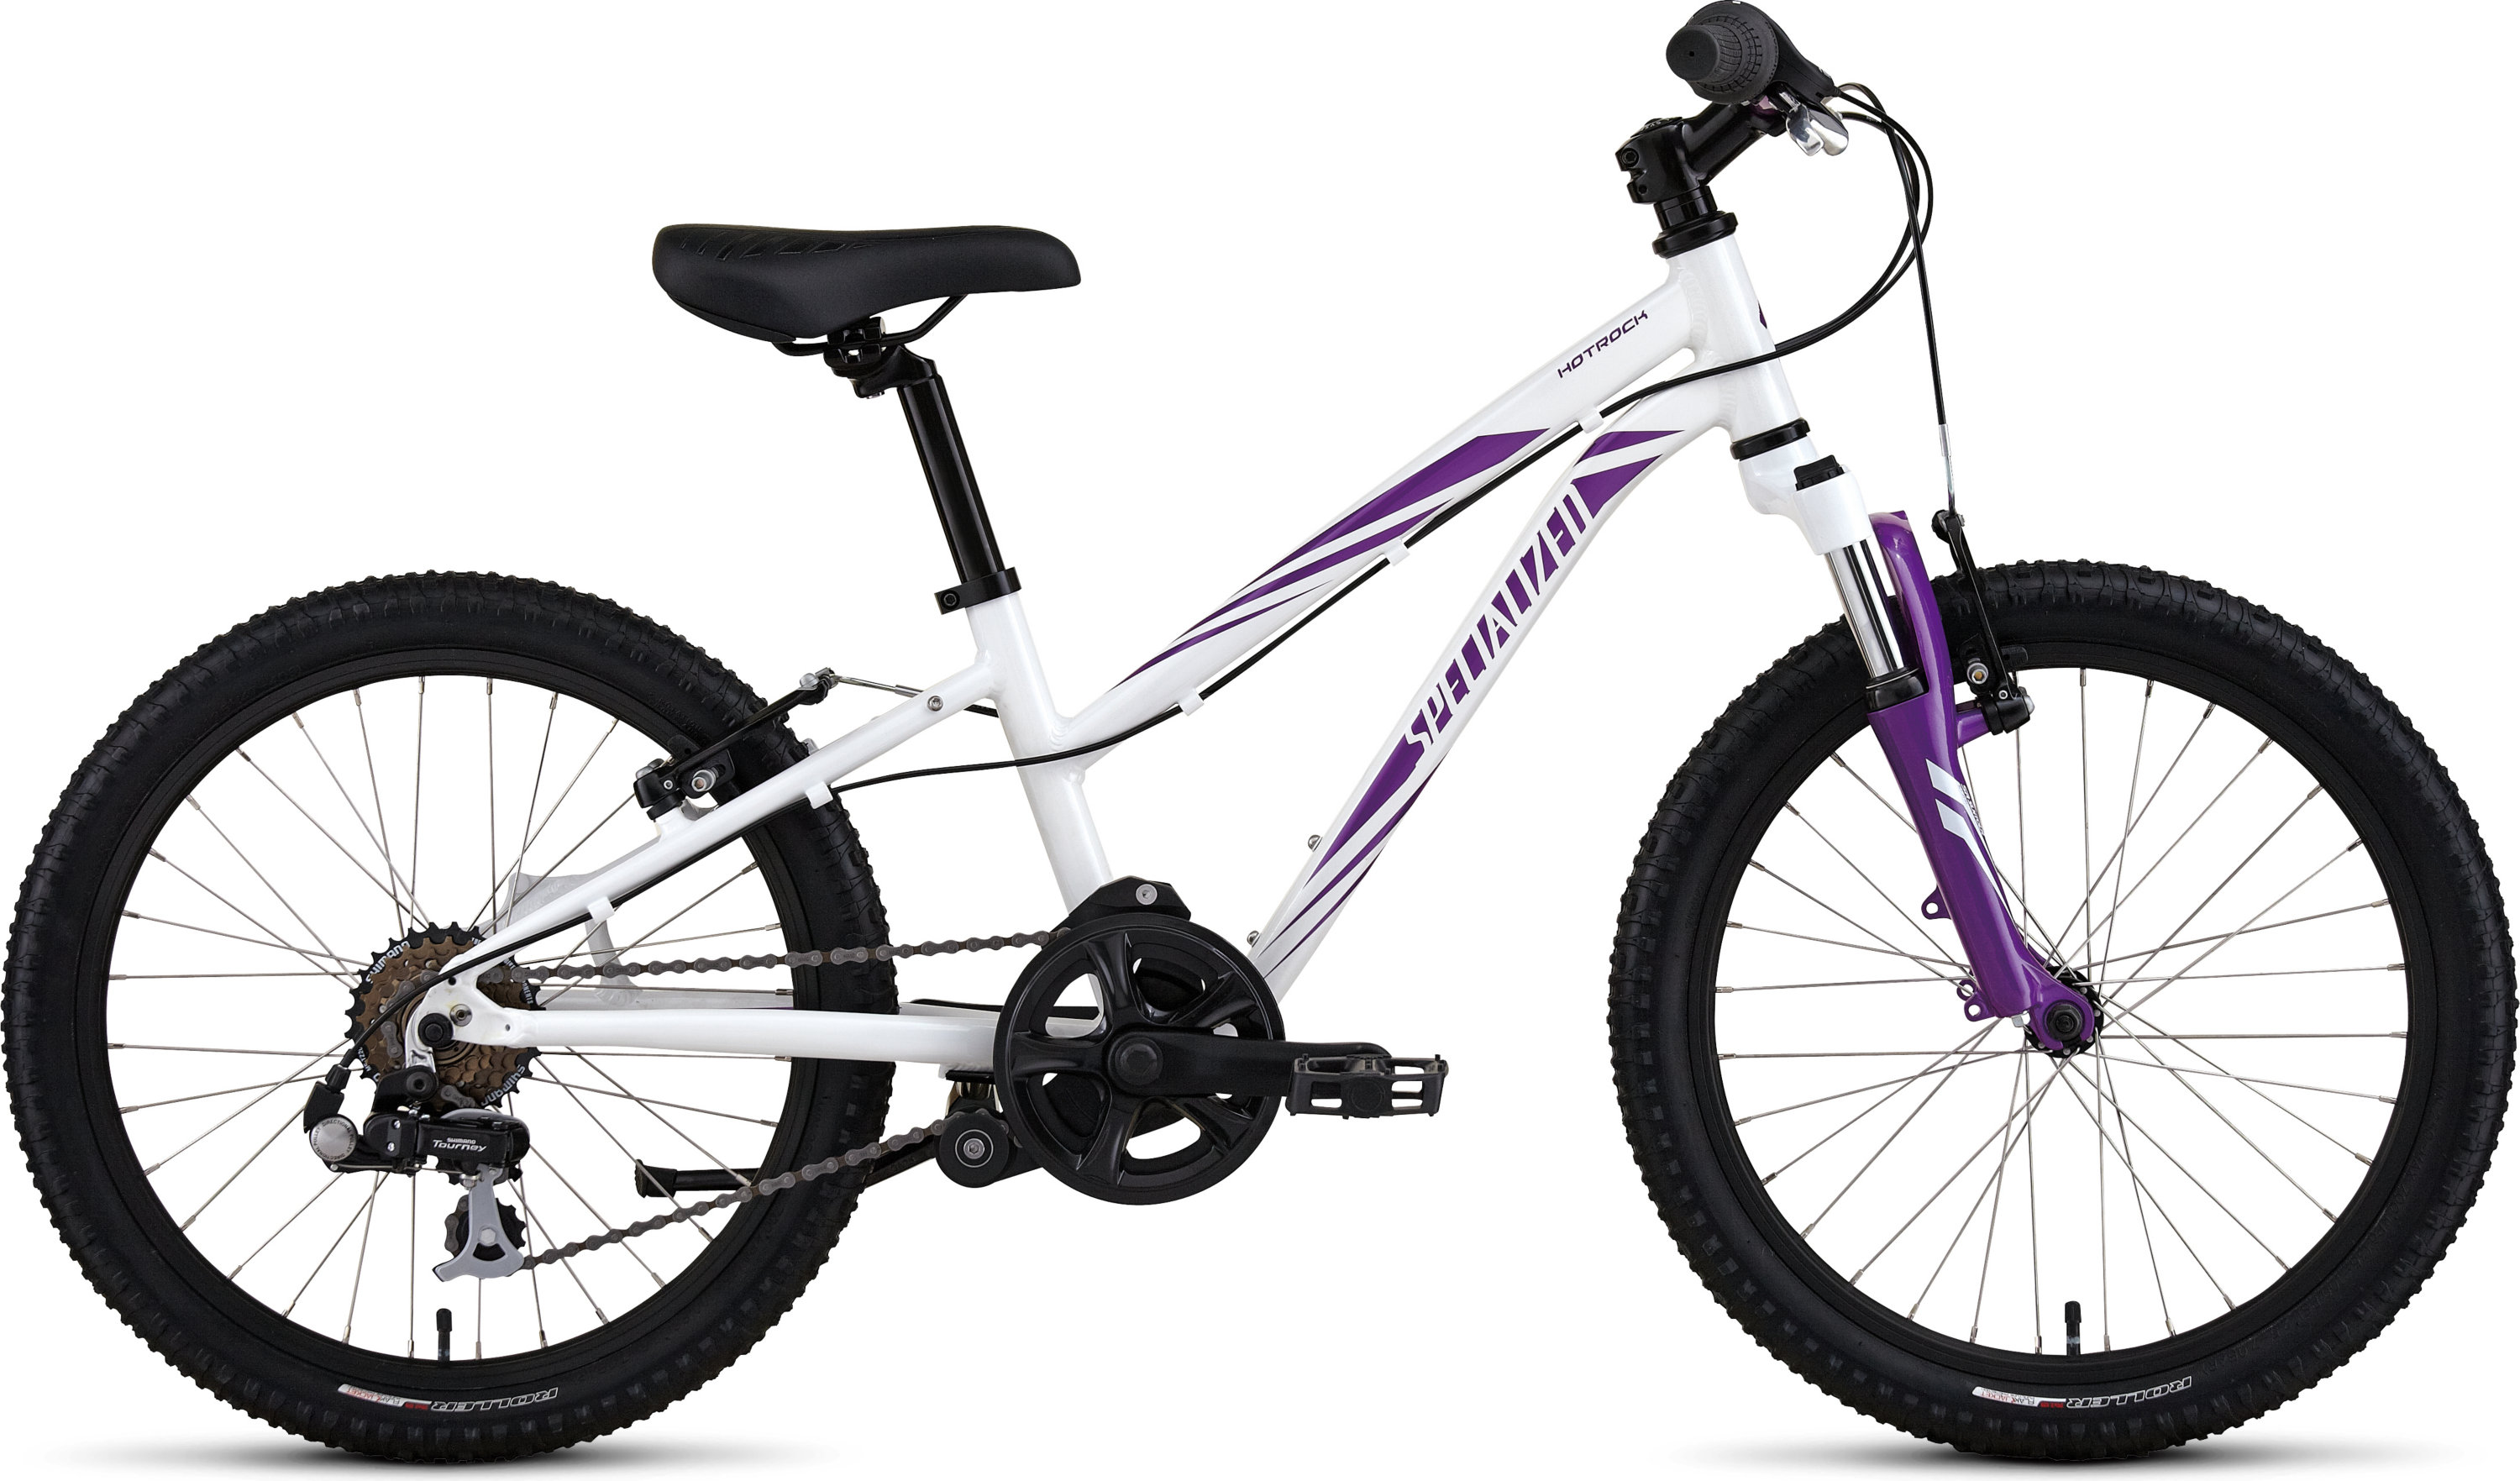 SPECIALIZED HTRK 20 6 SPD GIRL WHT/PUR - Bikedreams & Dustbikes